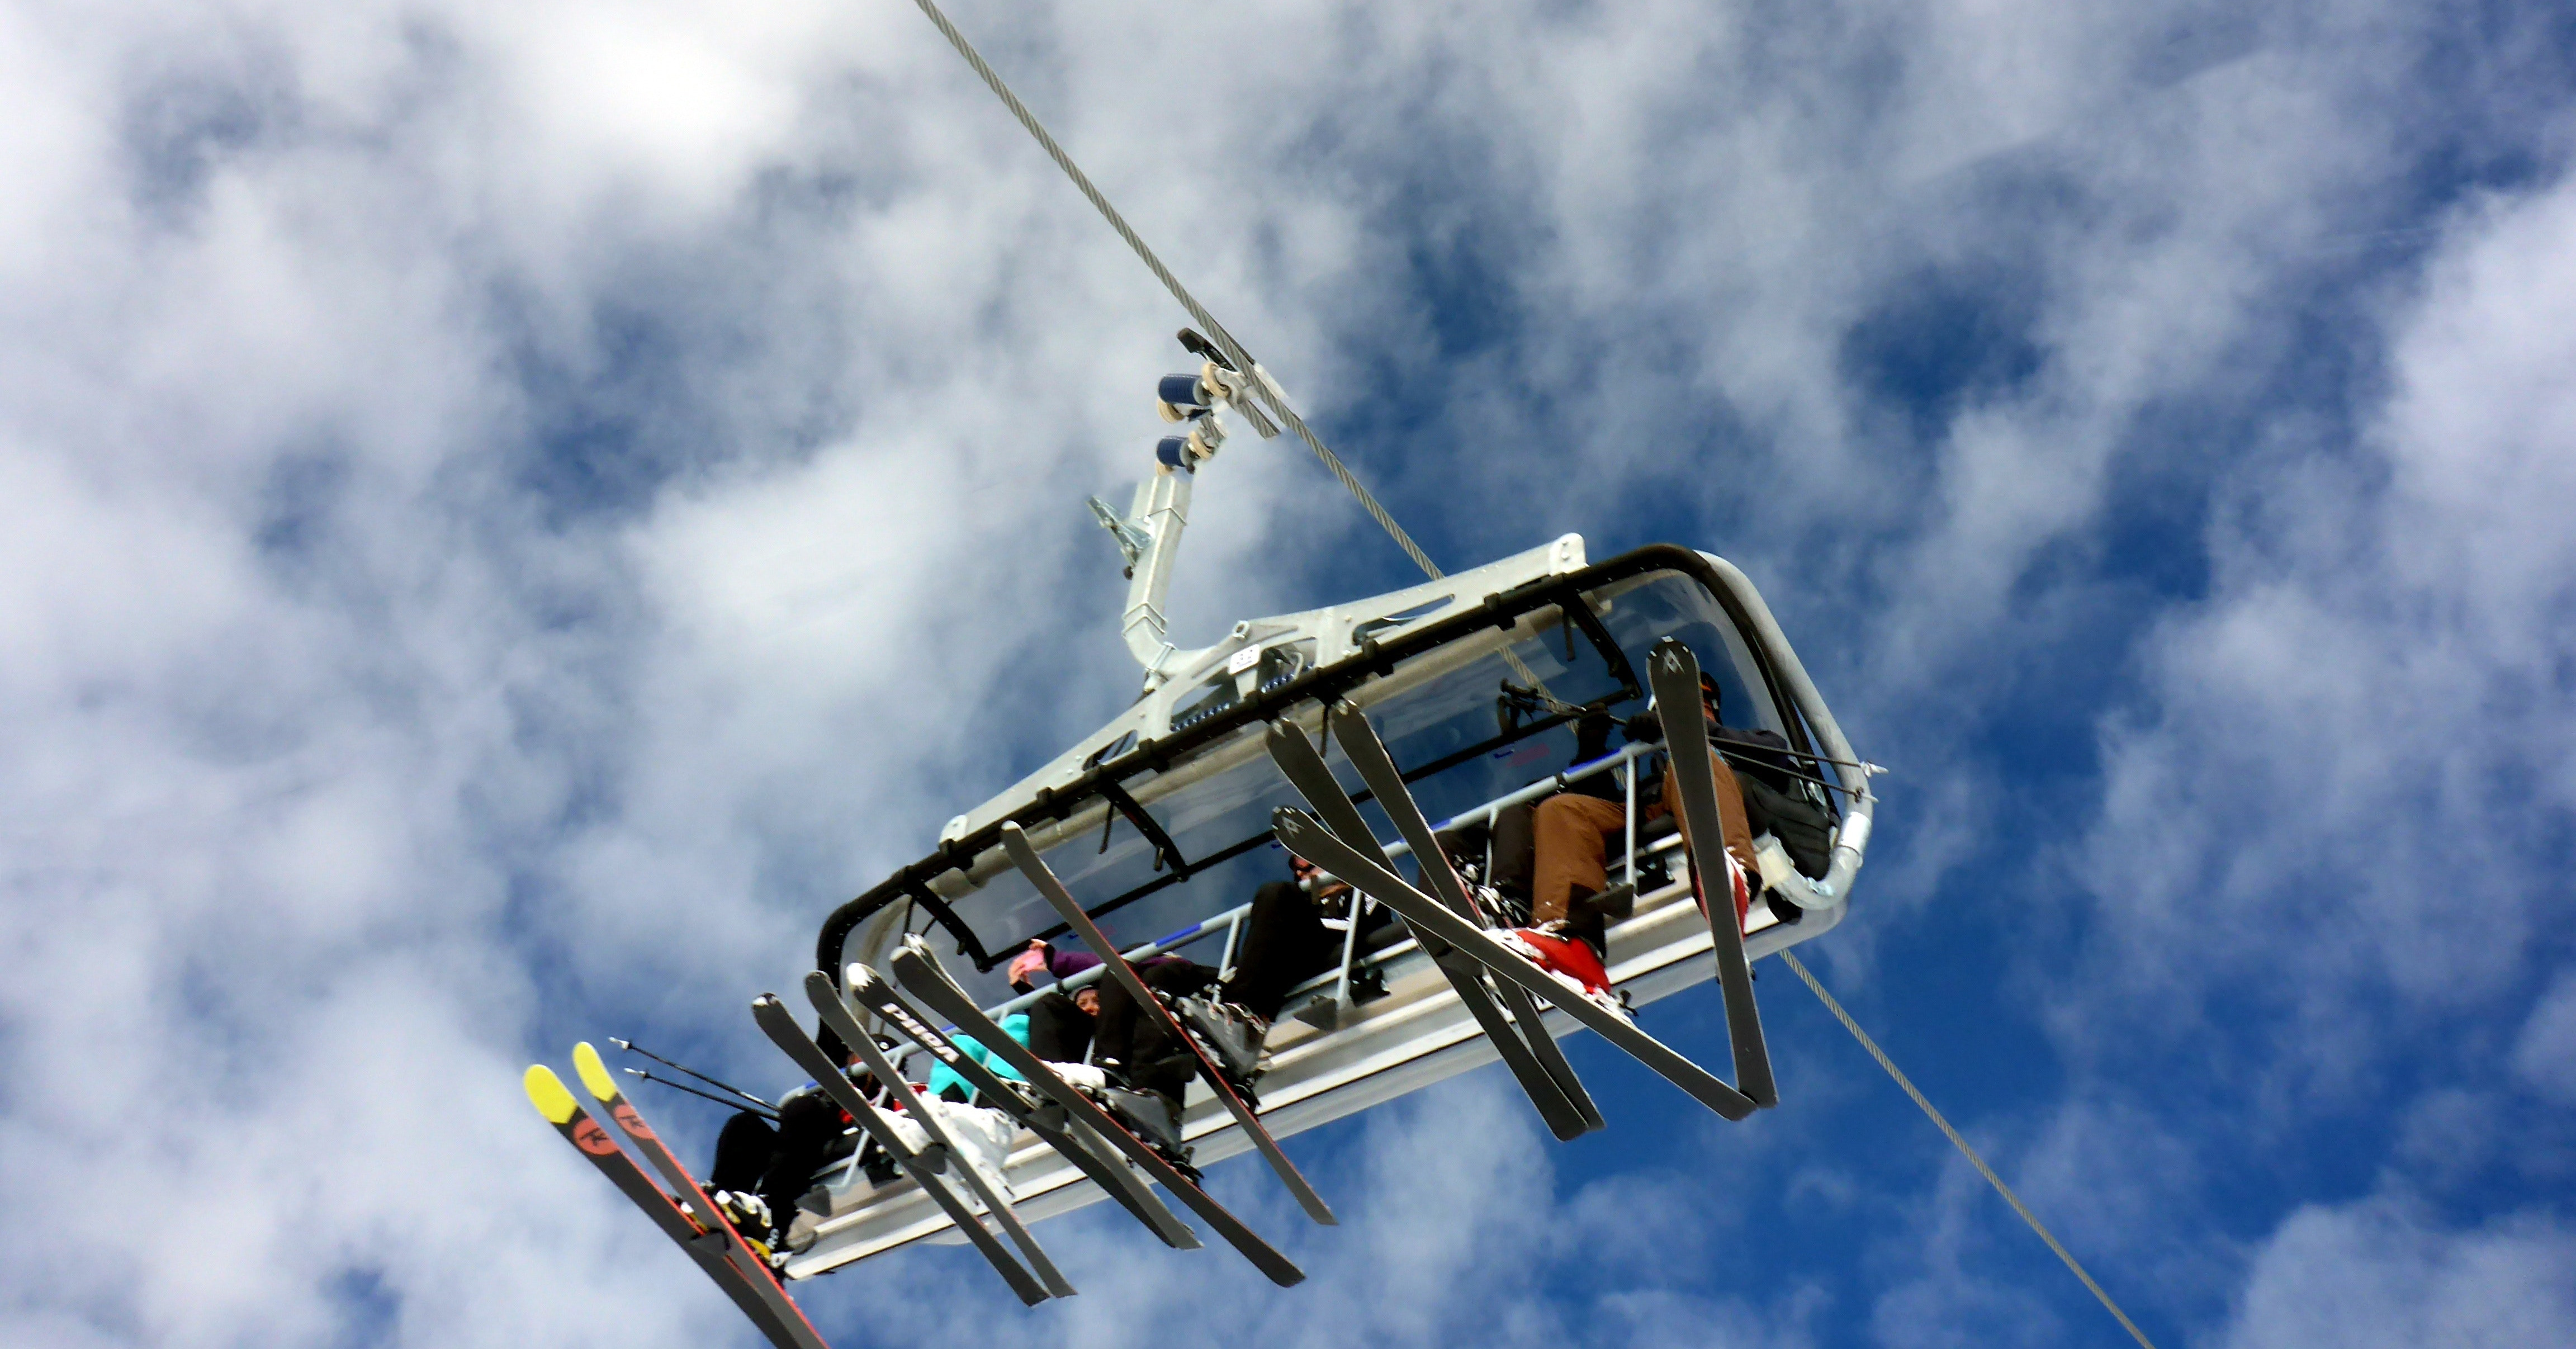 People in chair-lift